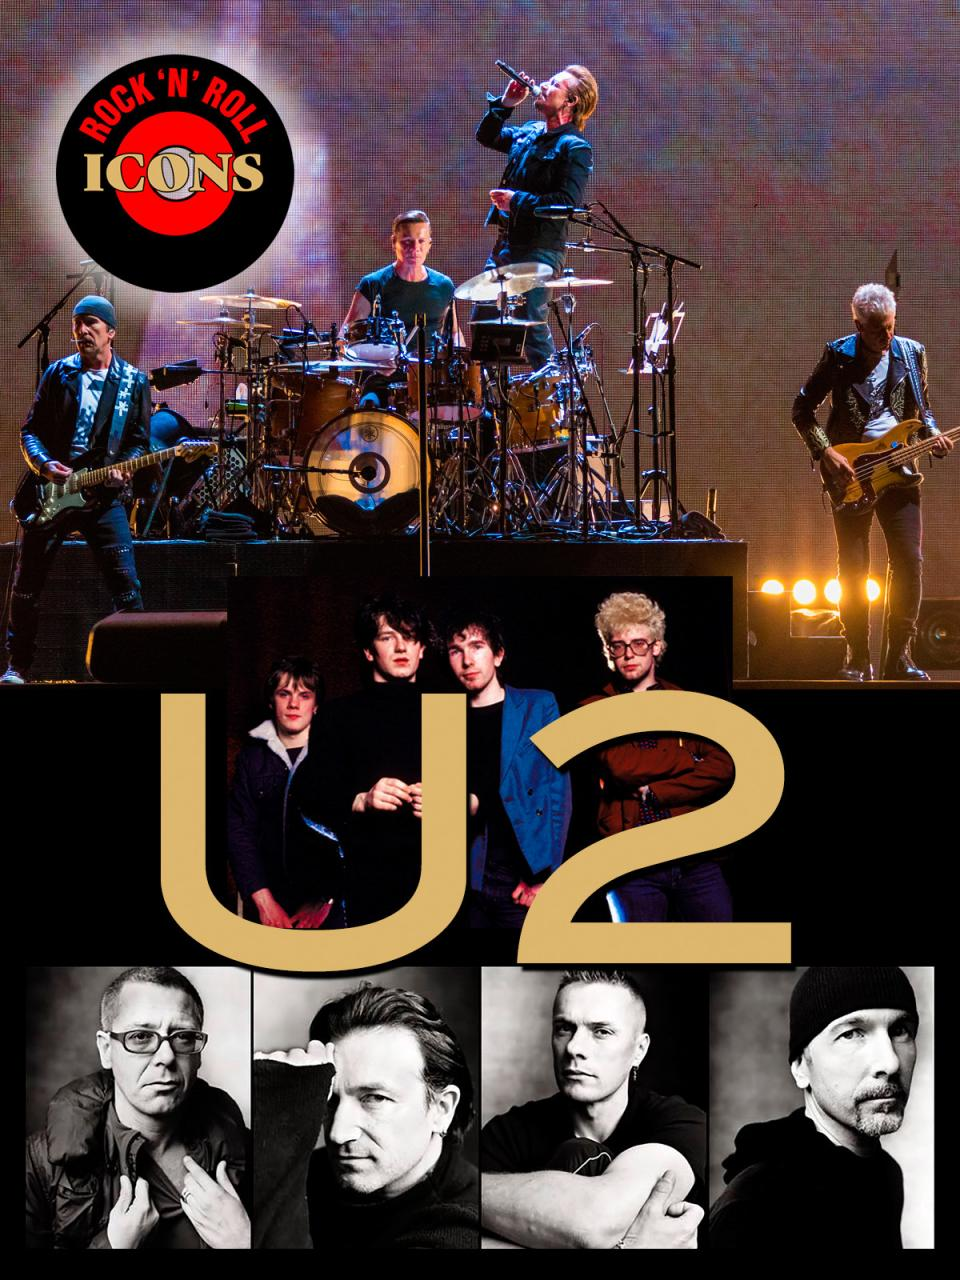 Rock 'n Roll Icons: U2